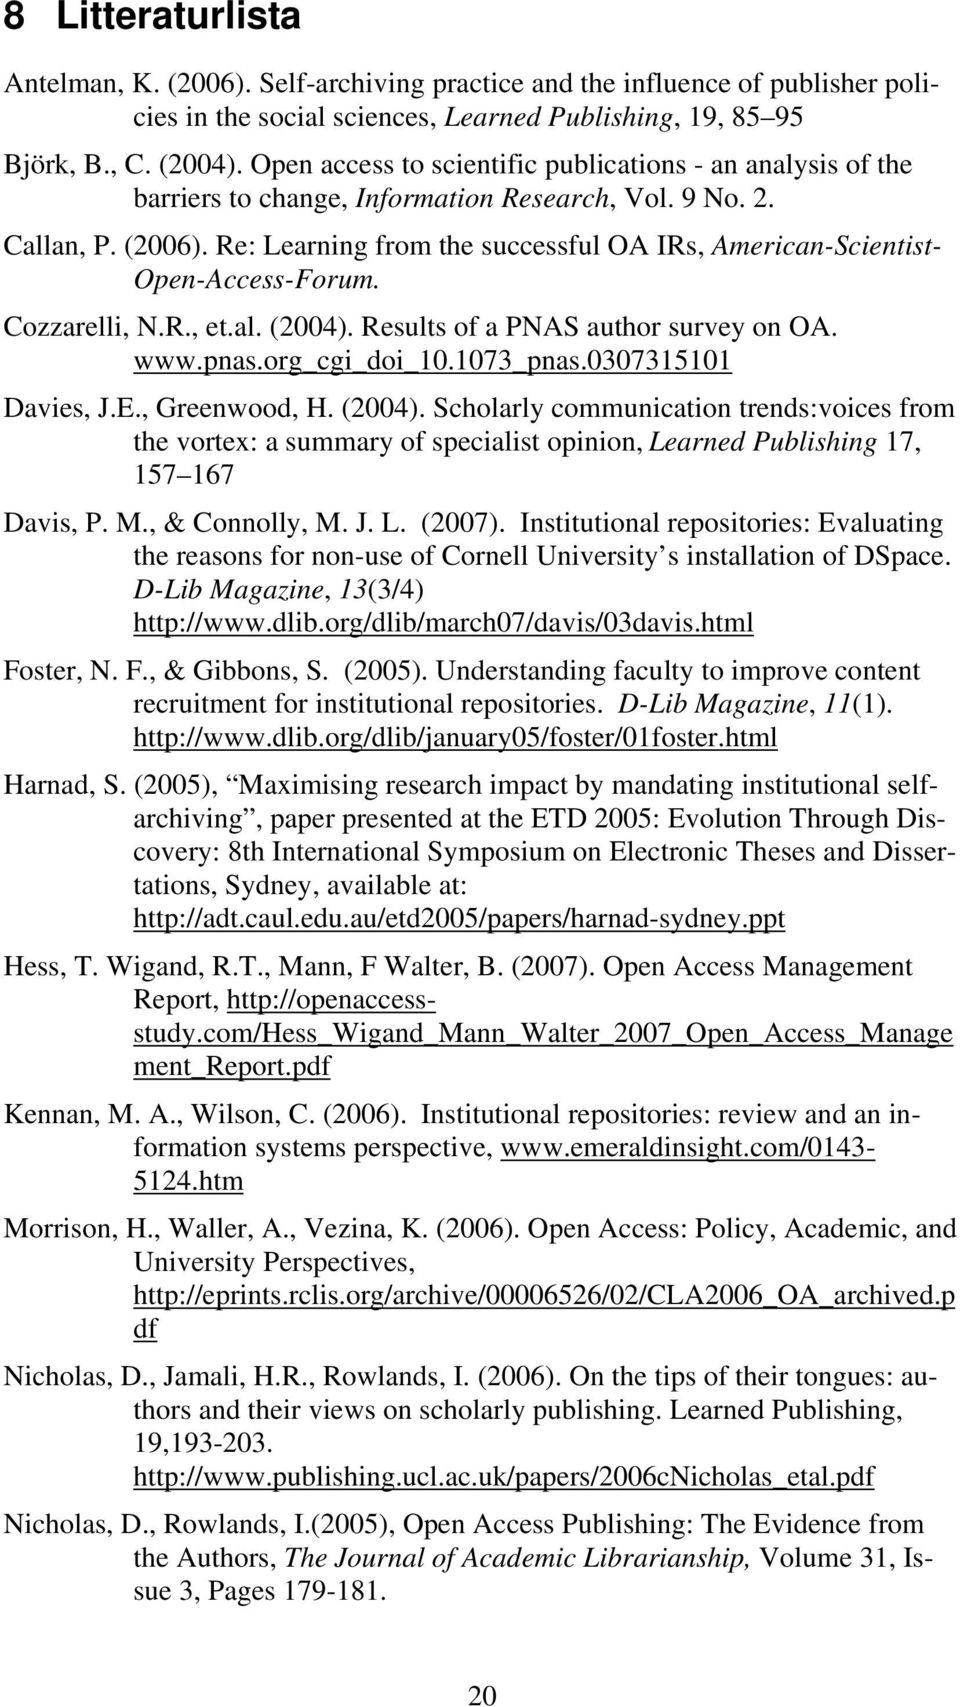 Re: Learning from the successful OA IRs, American-Scientist- Open-Access-Forum. Cozzarelli, N.R., et.al. (2004). Results of a PNAS author survey on OA. www.pnas.org_cgi_doi_10.1073_pnas.